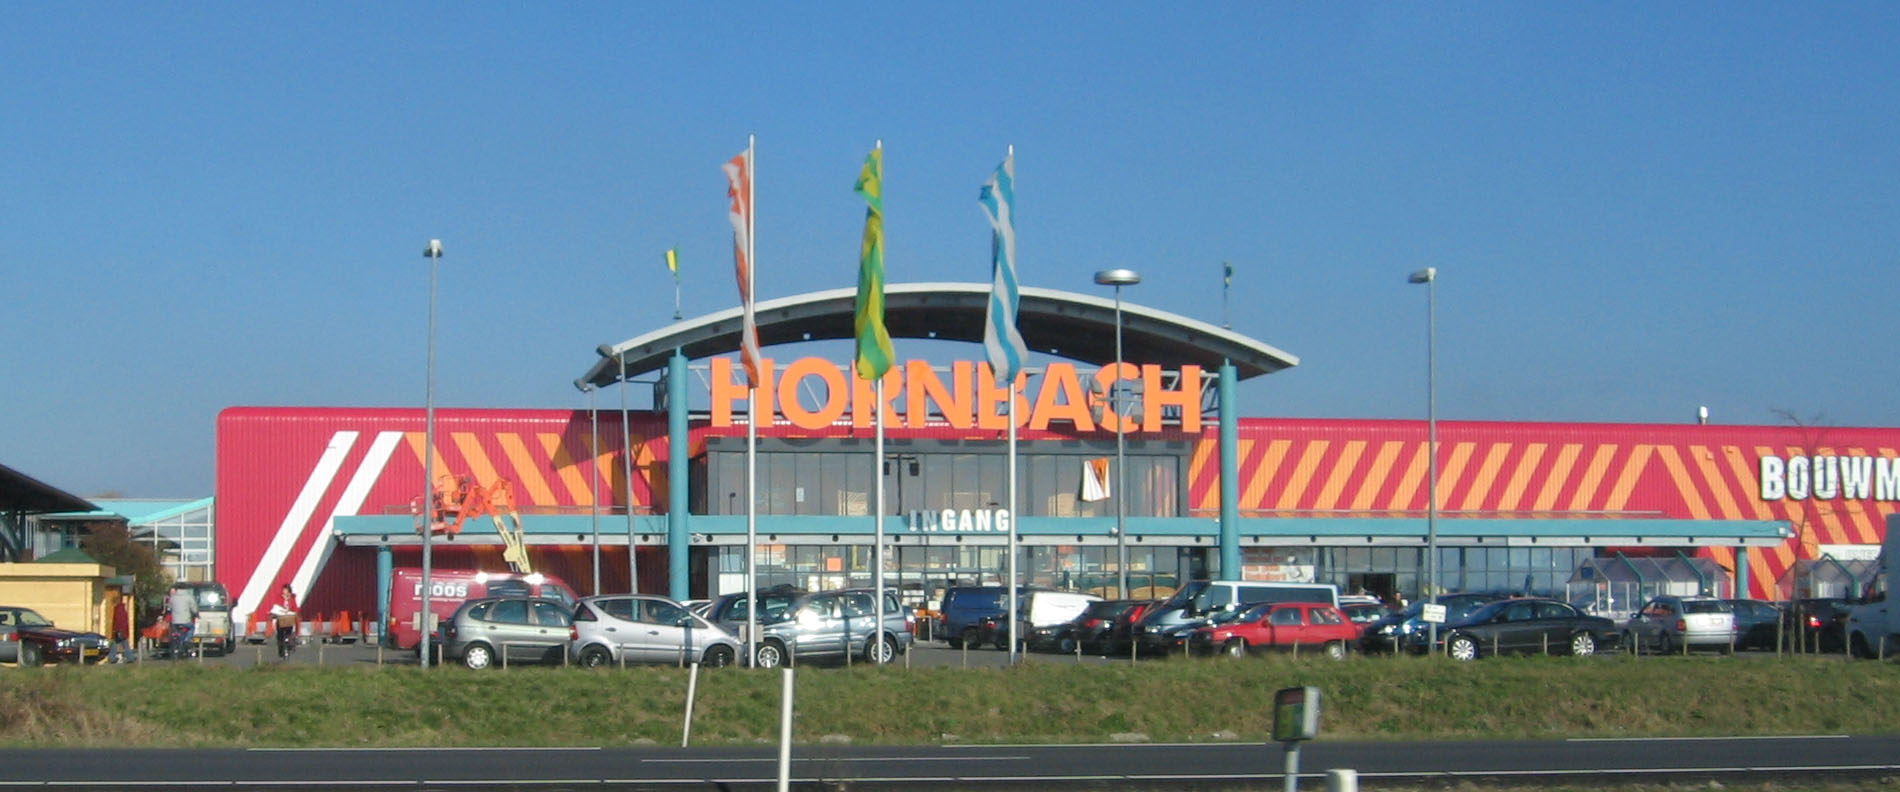 File:Hornbach Wateringen.jpg - Wikimedia Commons